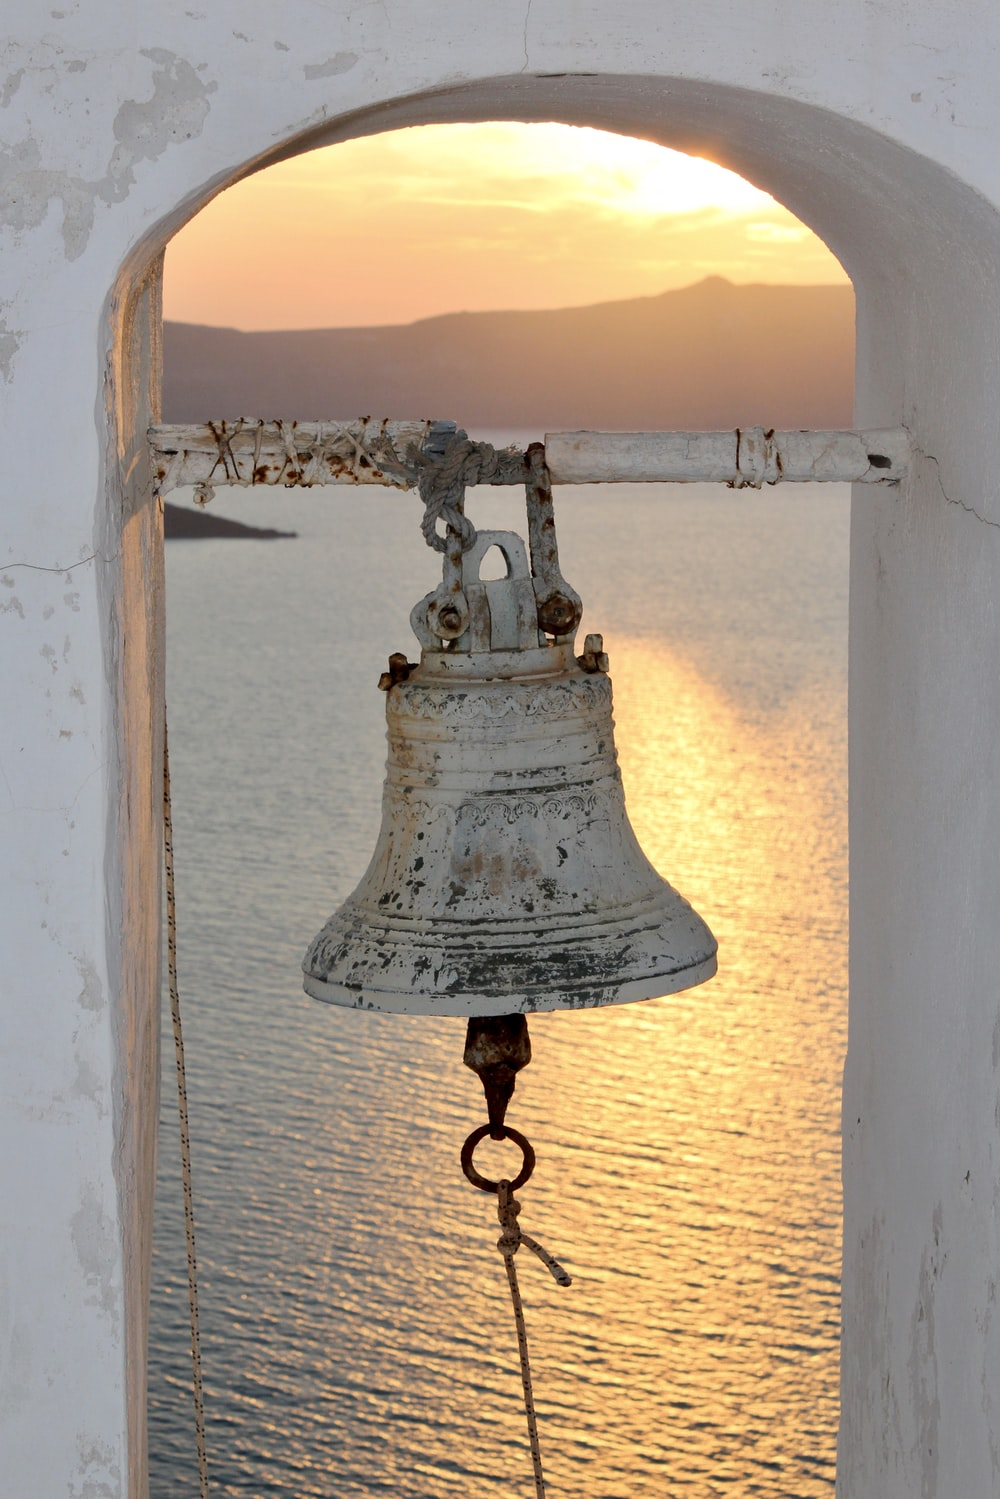 white and black metal bell near body of water